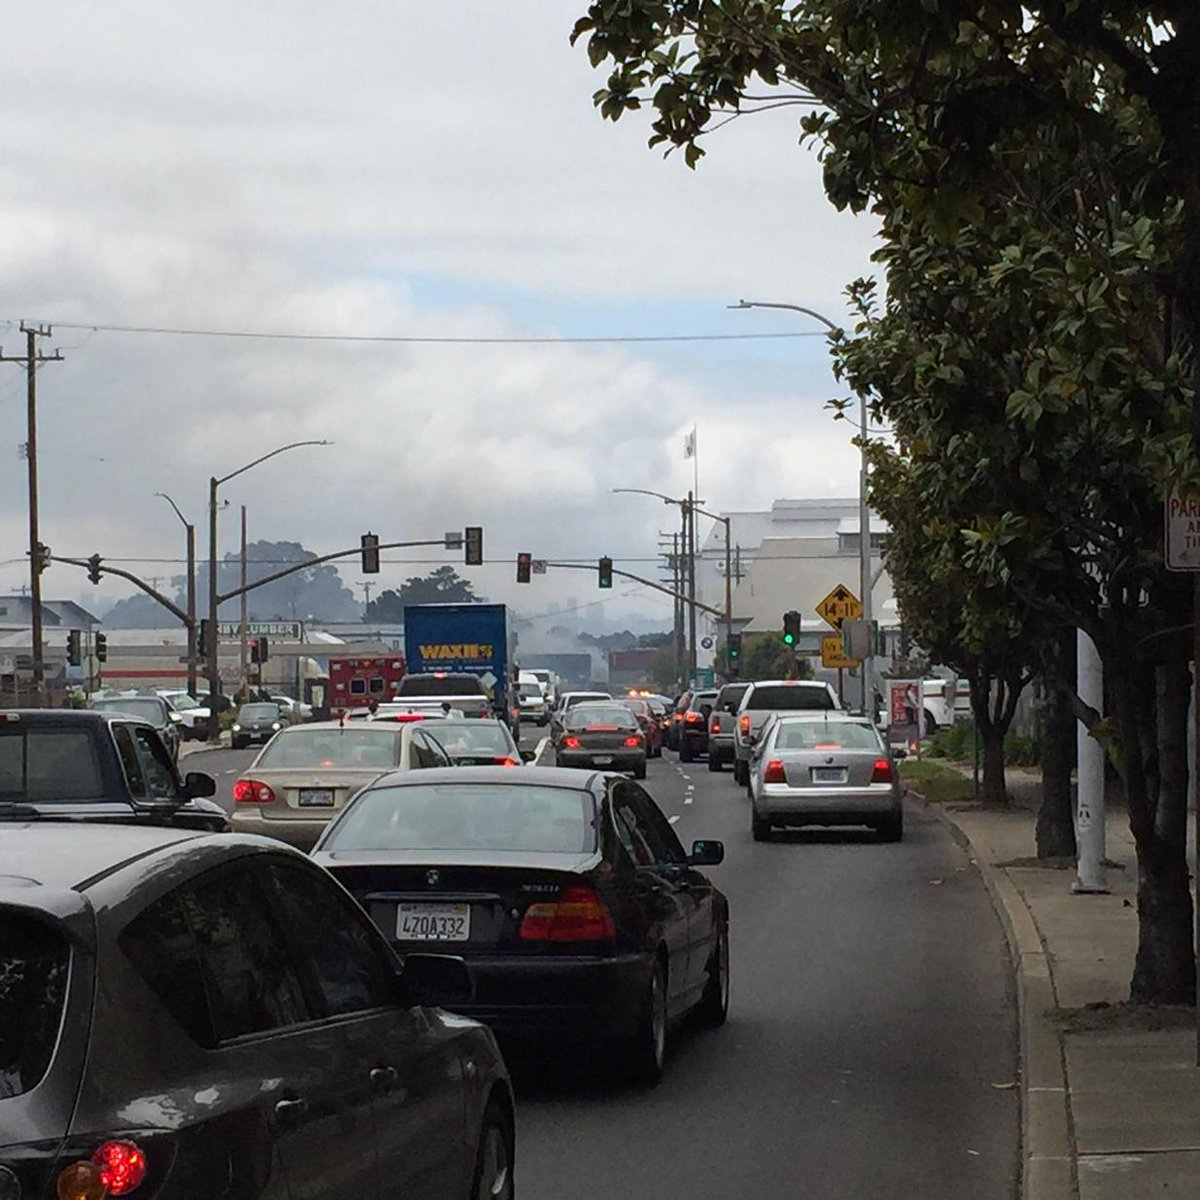 Big fire on Ashby just west of 9th St.  Ashby shut down. /cc @berkeleyside http://t.co/tD5OkPTdbT